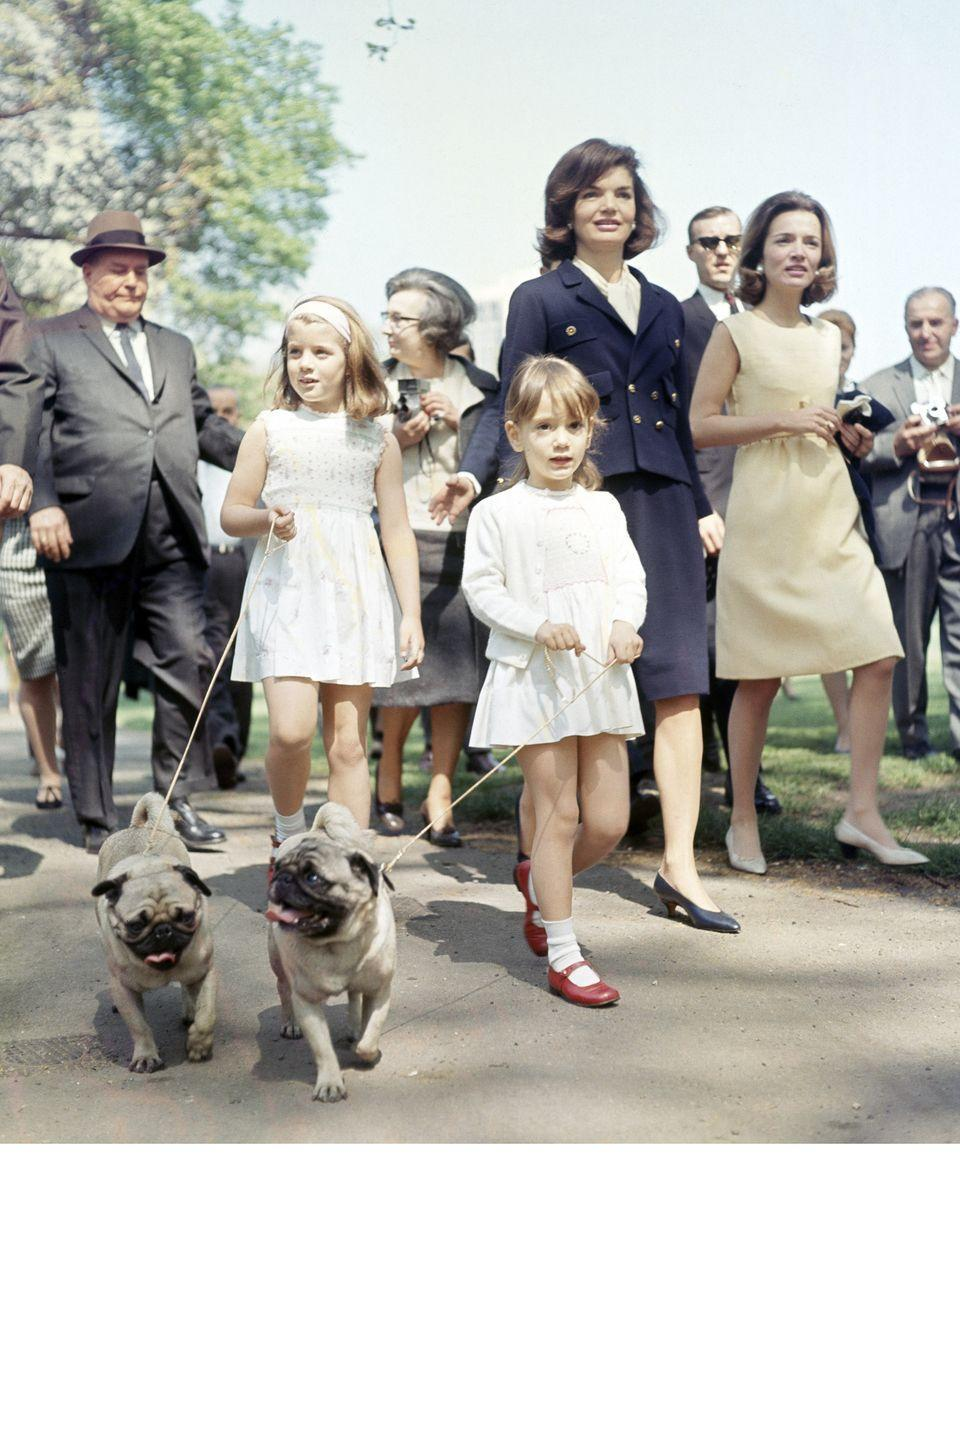 <p>Always a chic pair, the former First Lady is captured walking with her sister Princess Lee Radziwill in a nautical-inspired navy suit with gold buttons. Daughter Caroline and niece Anna opted for mini dresses. </p>